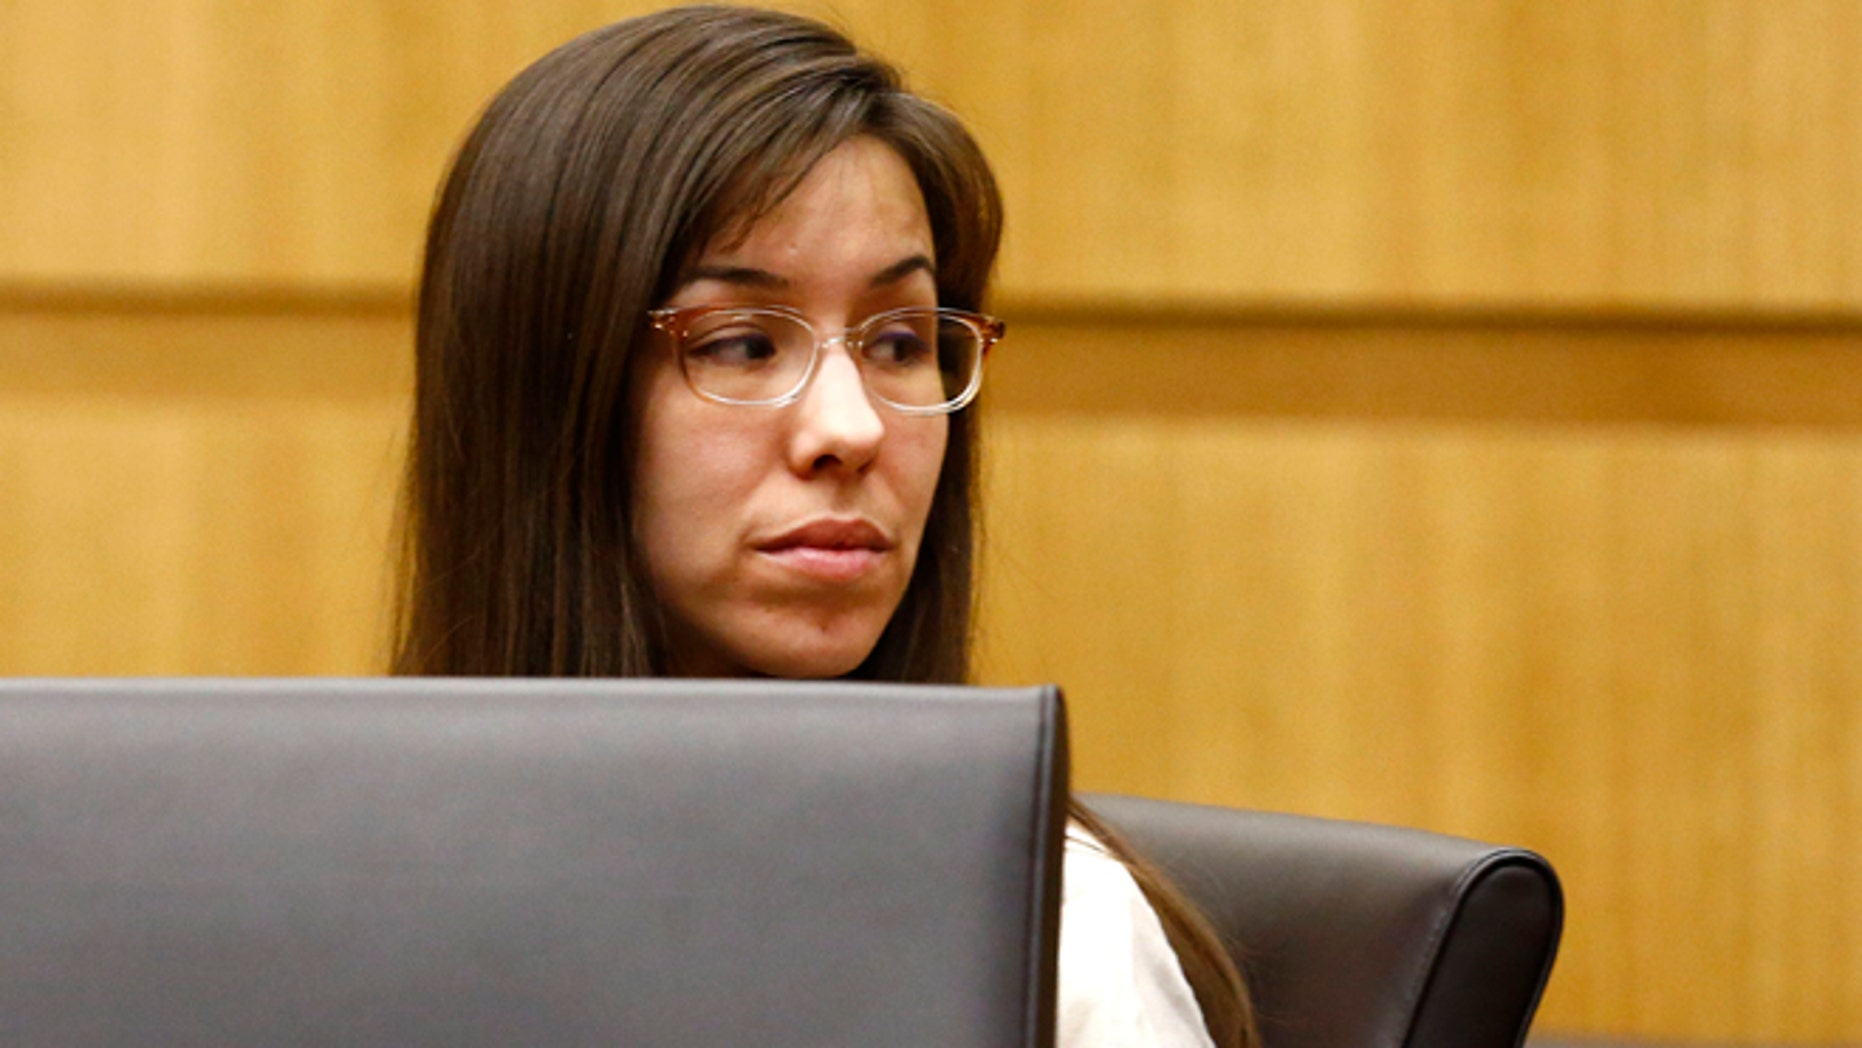 May 20, 2013: Jodi Arias looks at her family during the penalty phase of her murder trial at Maricopa County Superior Court in Phoenix, Ariz. (The Arizona Republic, Rob Schumacher, Pool)